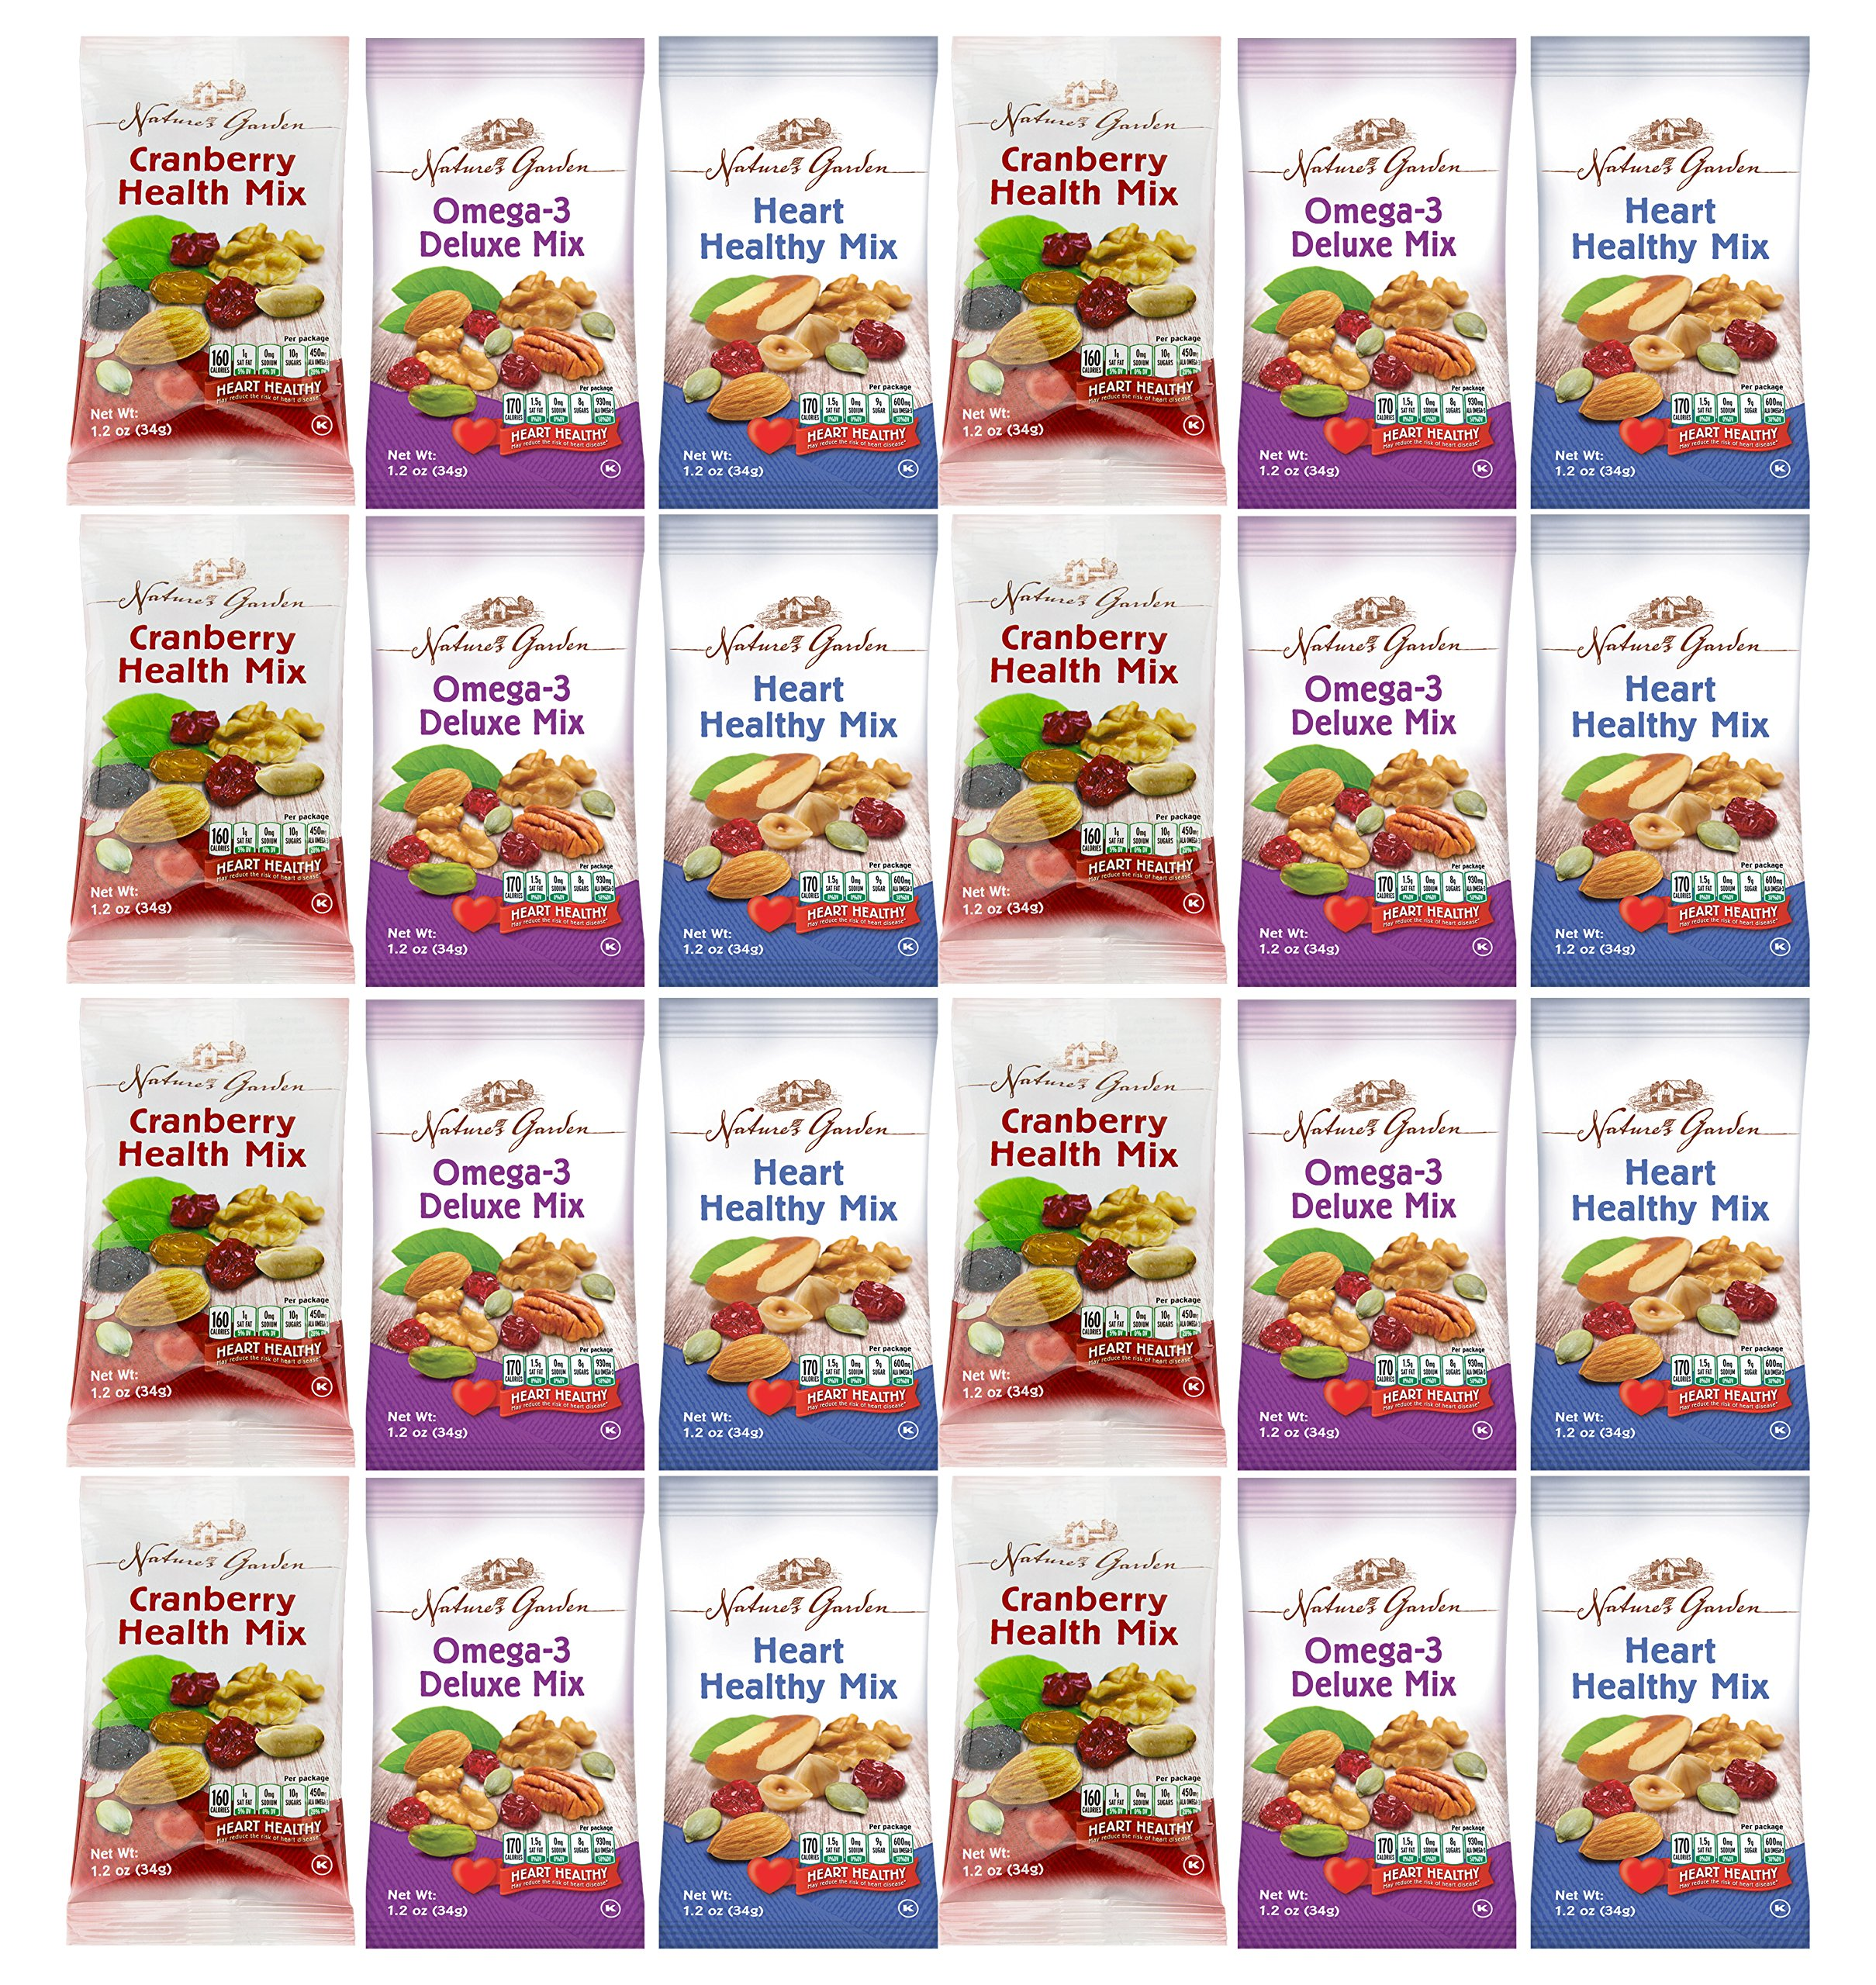 Healthy Premium Assorted Nuts and Fruits Snack Mix Sampler Variety Pack, Good for the Heart (24 Count)